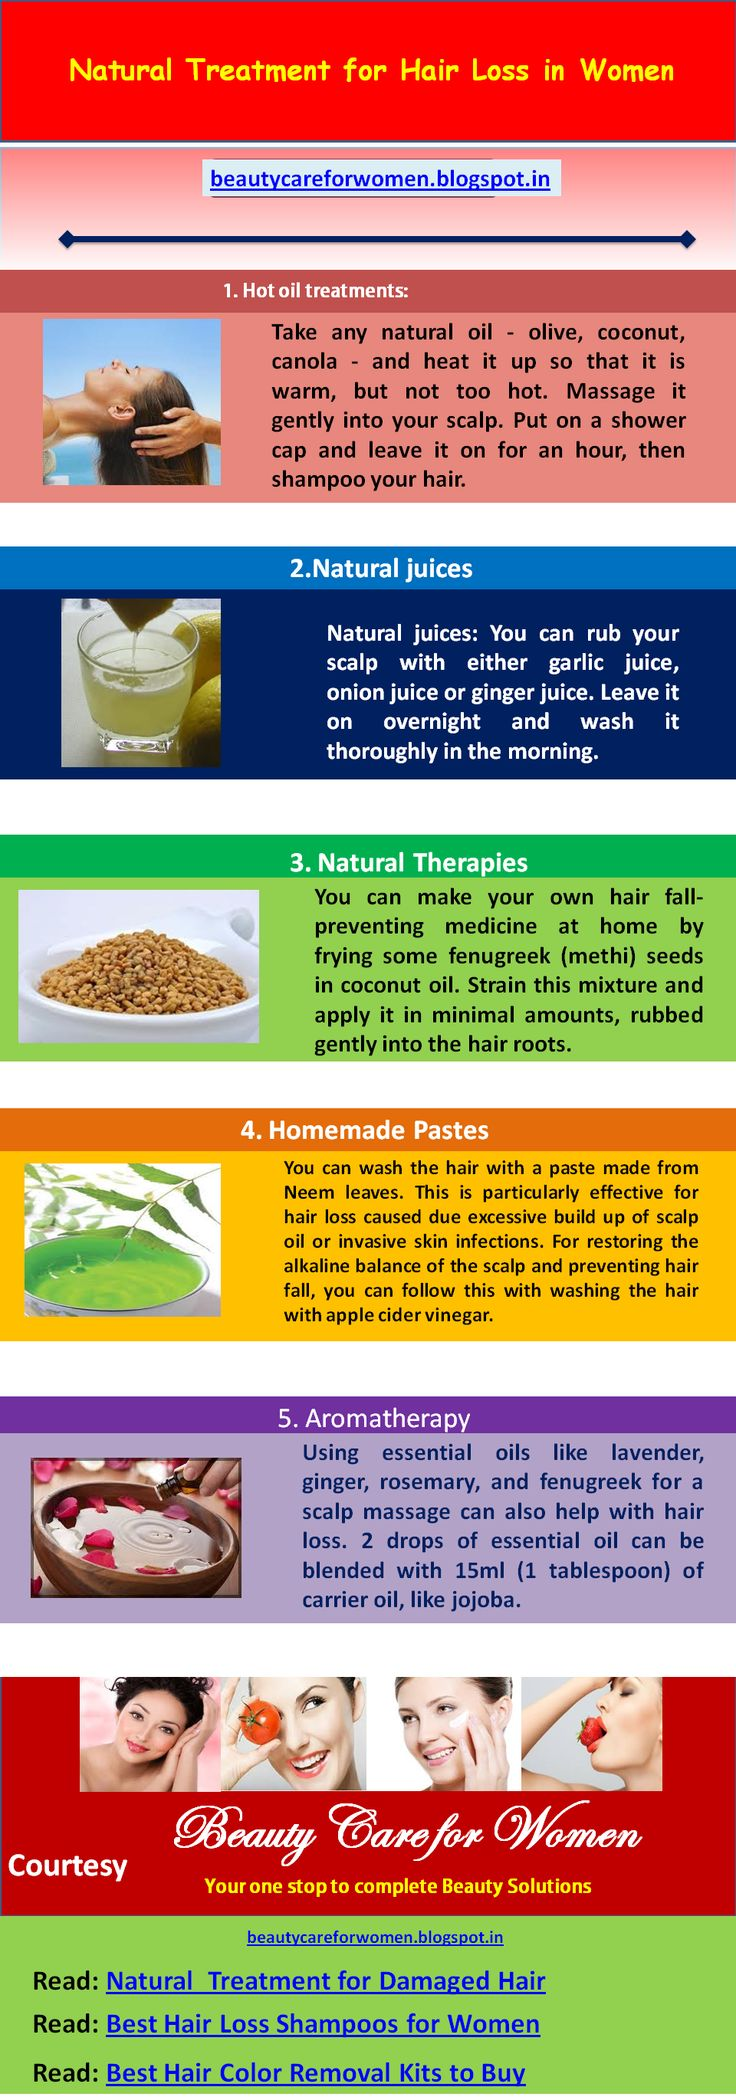 Best Hair Regrowth Images On Pinterest - Onion juice for hair regrowth review